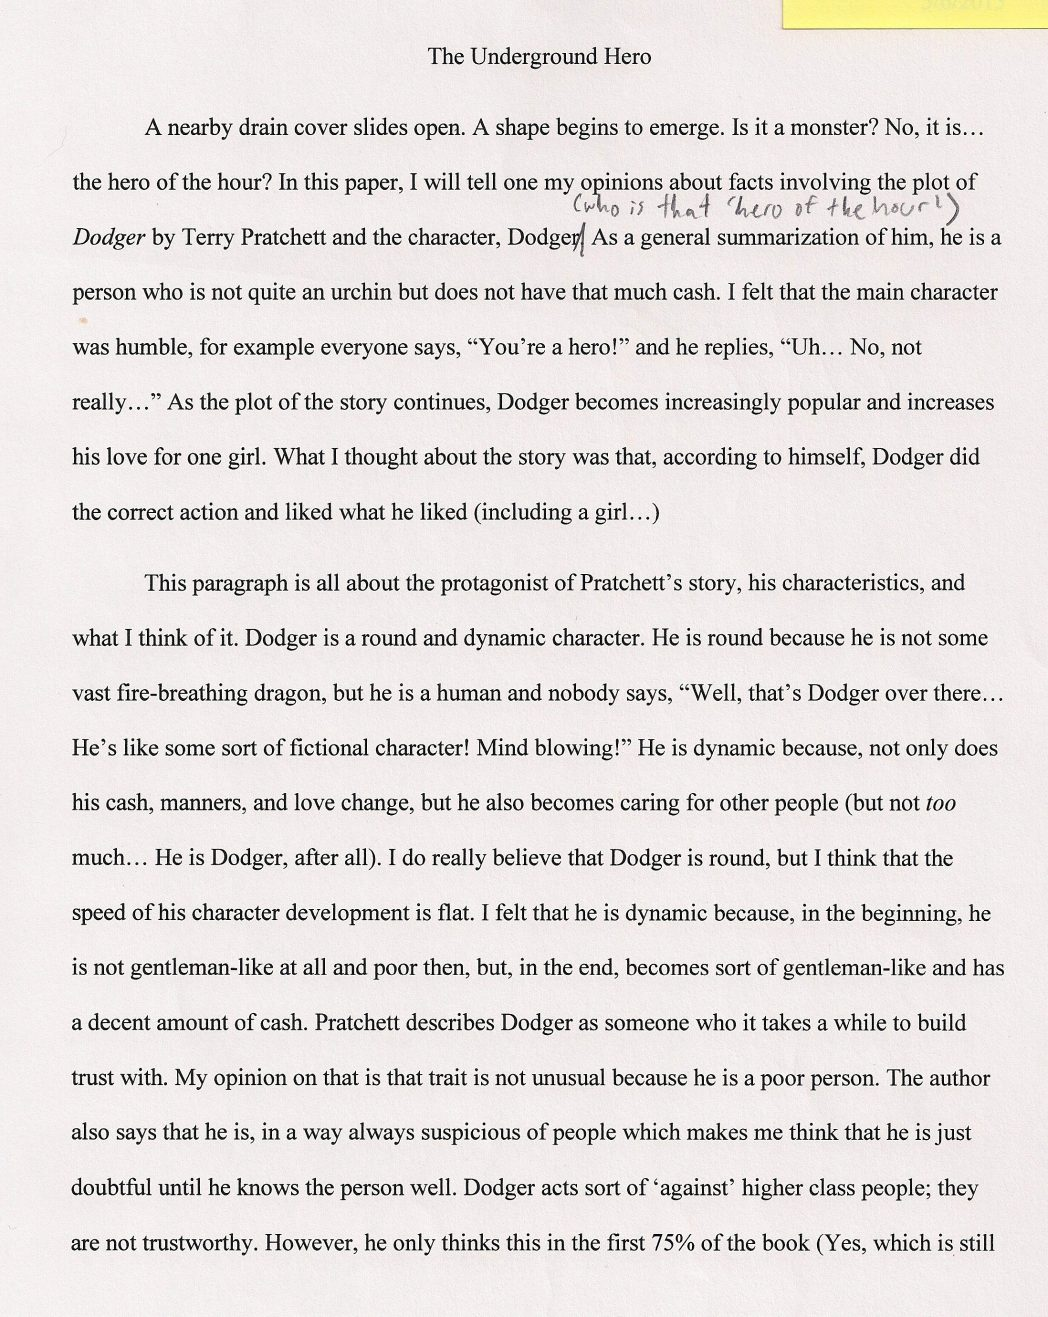 006 My Hero Essays On Heroes Good Writing What To Write Argumentative About The Undergro Should I 1048x1317 Staggering Essay Examples Michigan Superhero Full